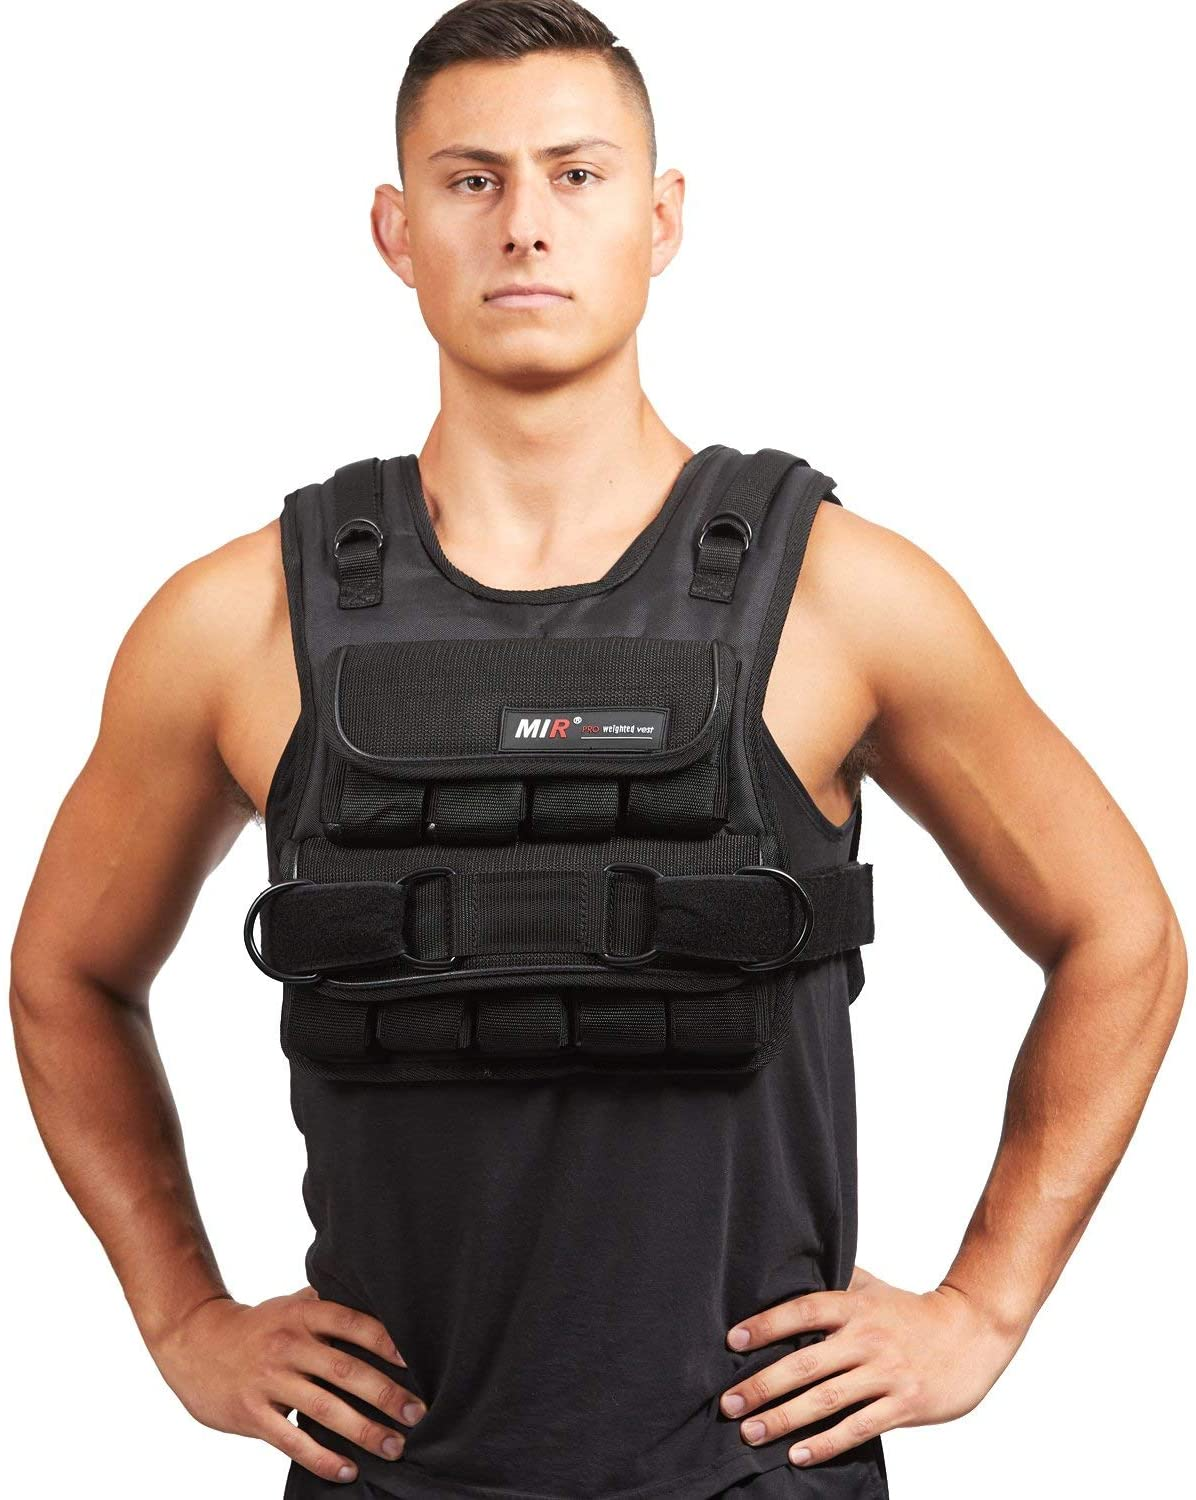 mir weighted vest | weighted vests